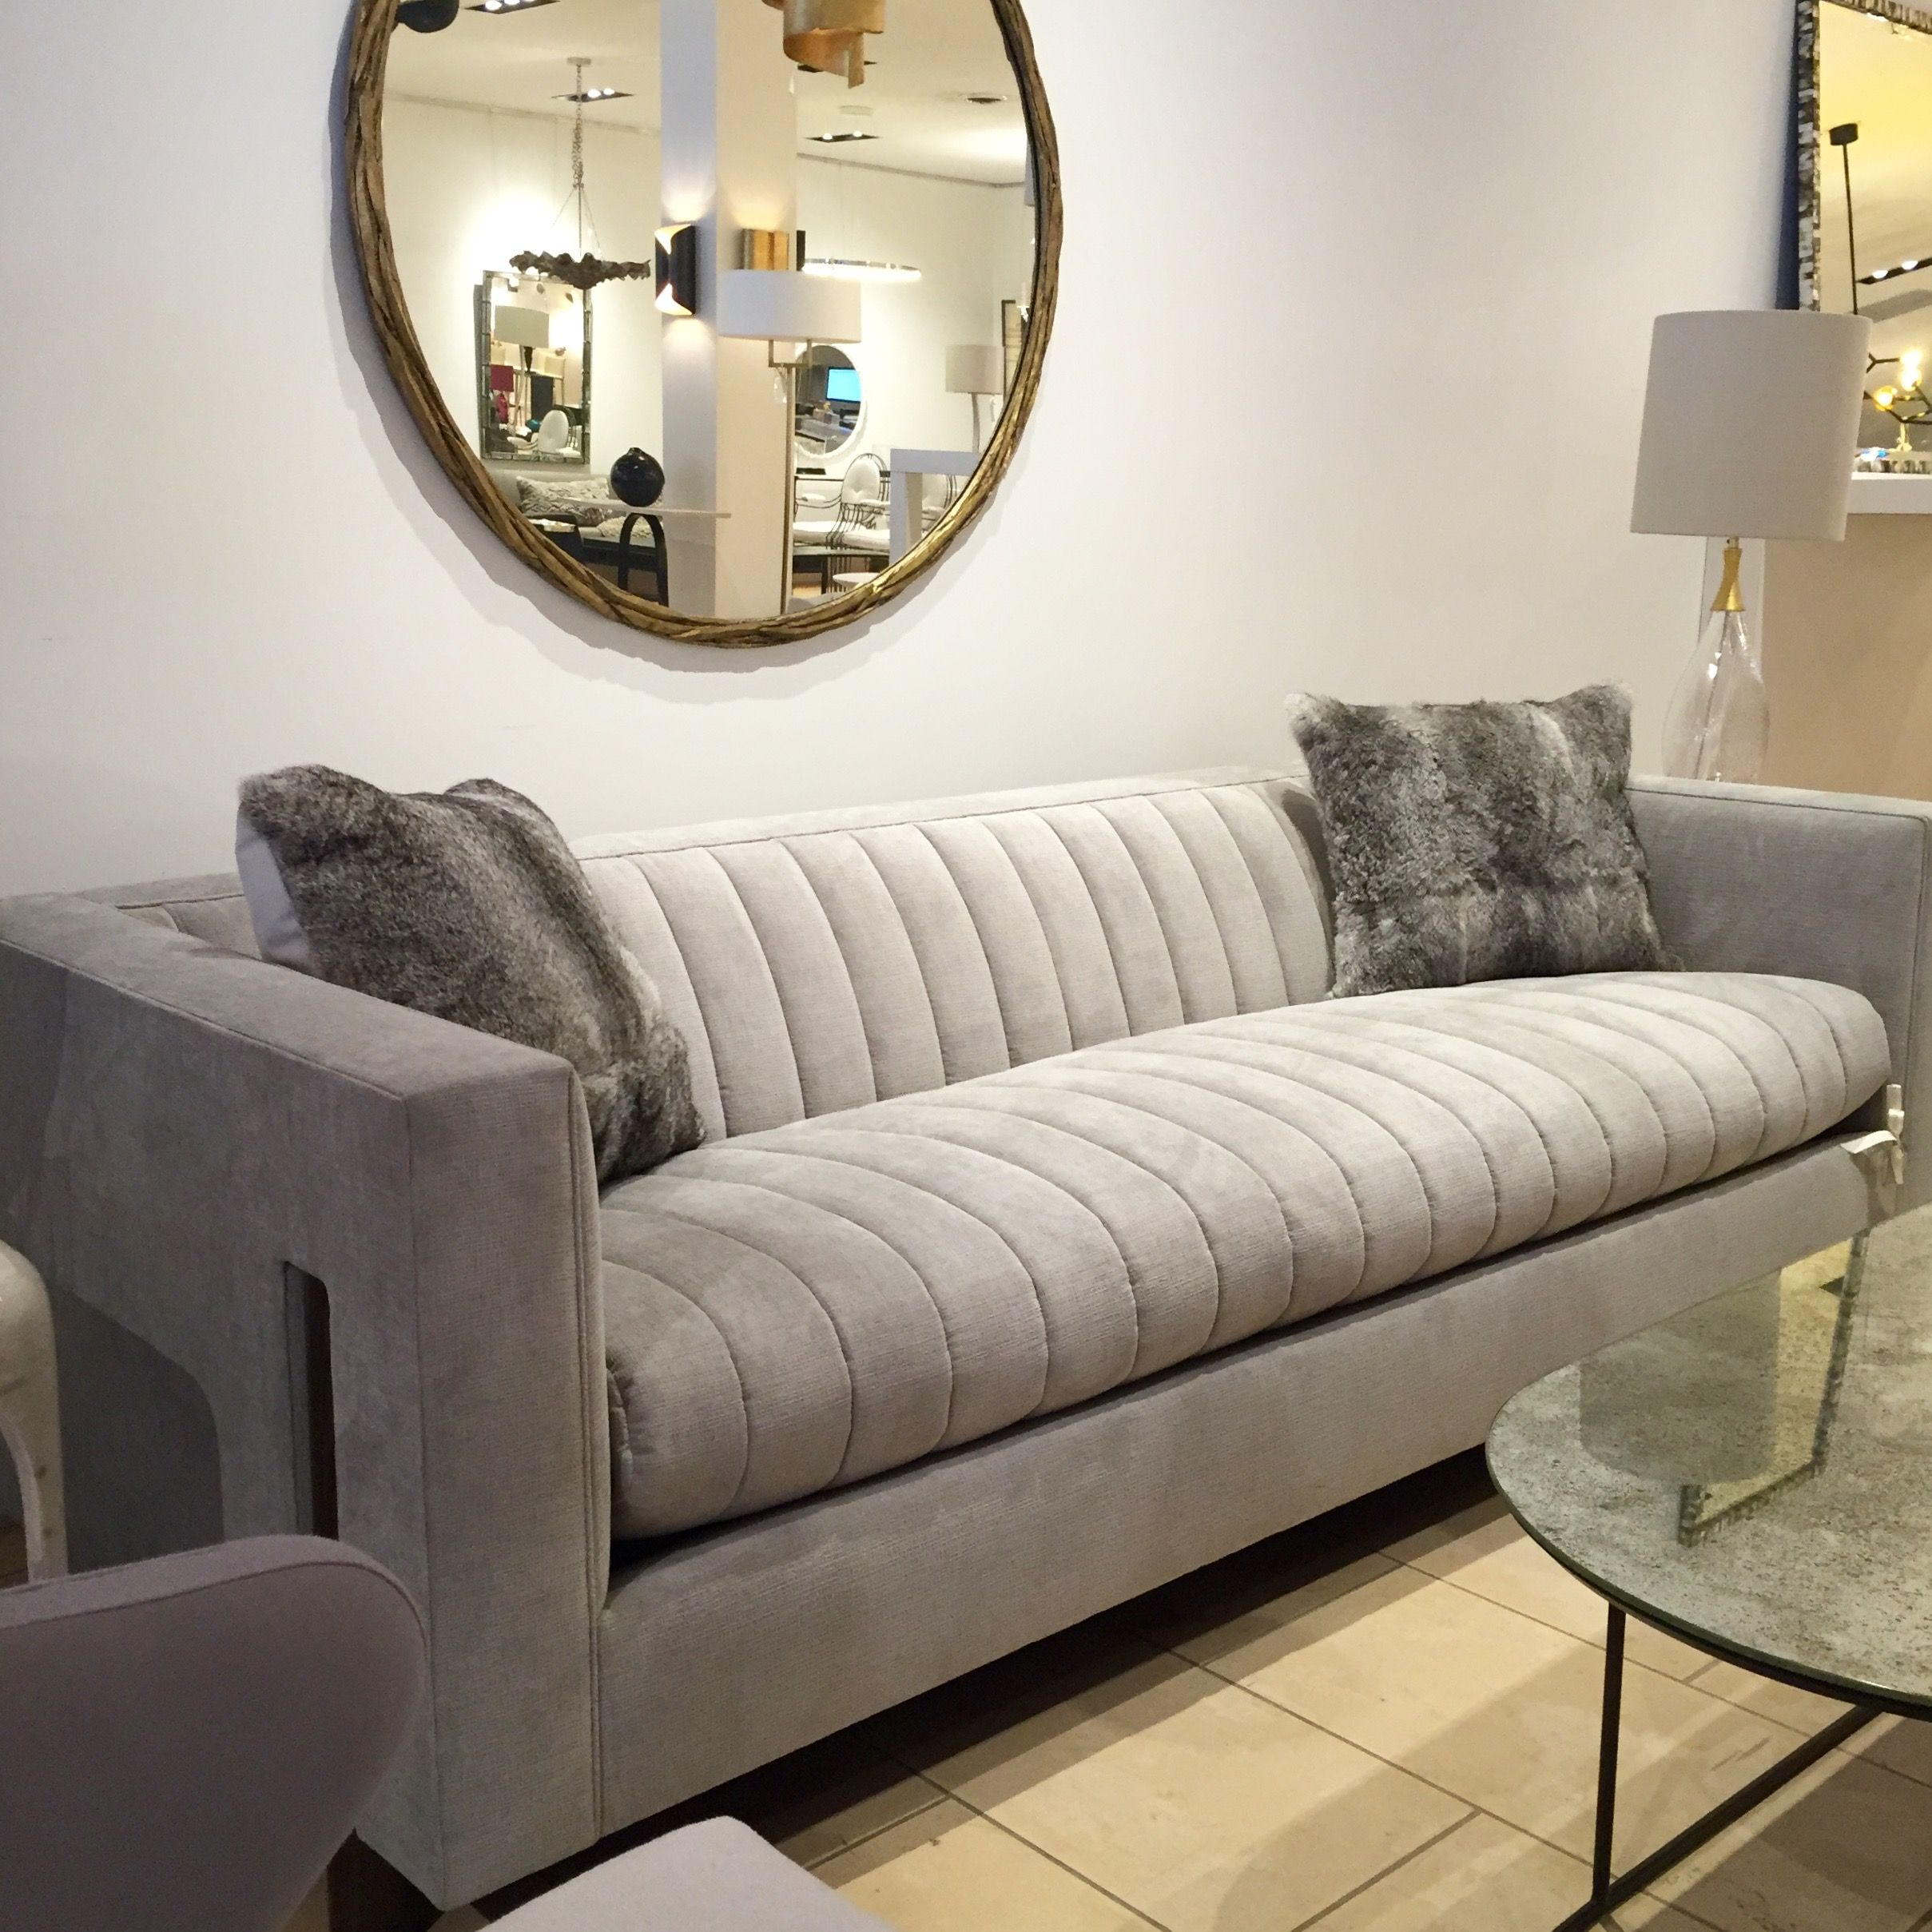 Awe Inspiring Gray Sofa By Douglas Levine For Bright Chair Southhillhome Machost Co Dining Chair Design Ideas Machostcouk